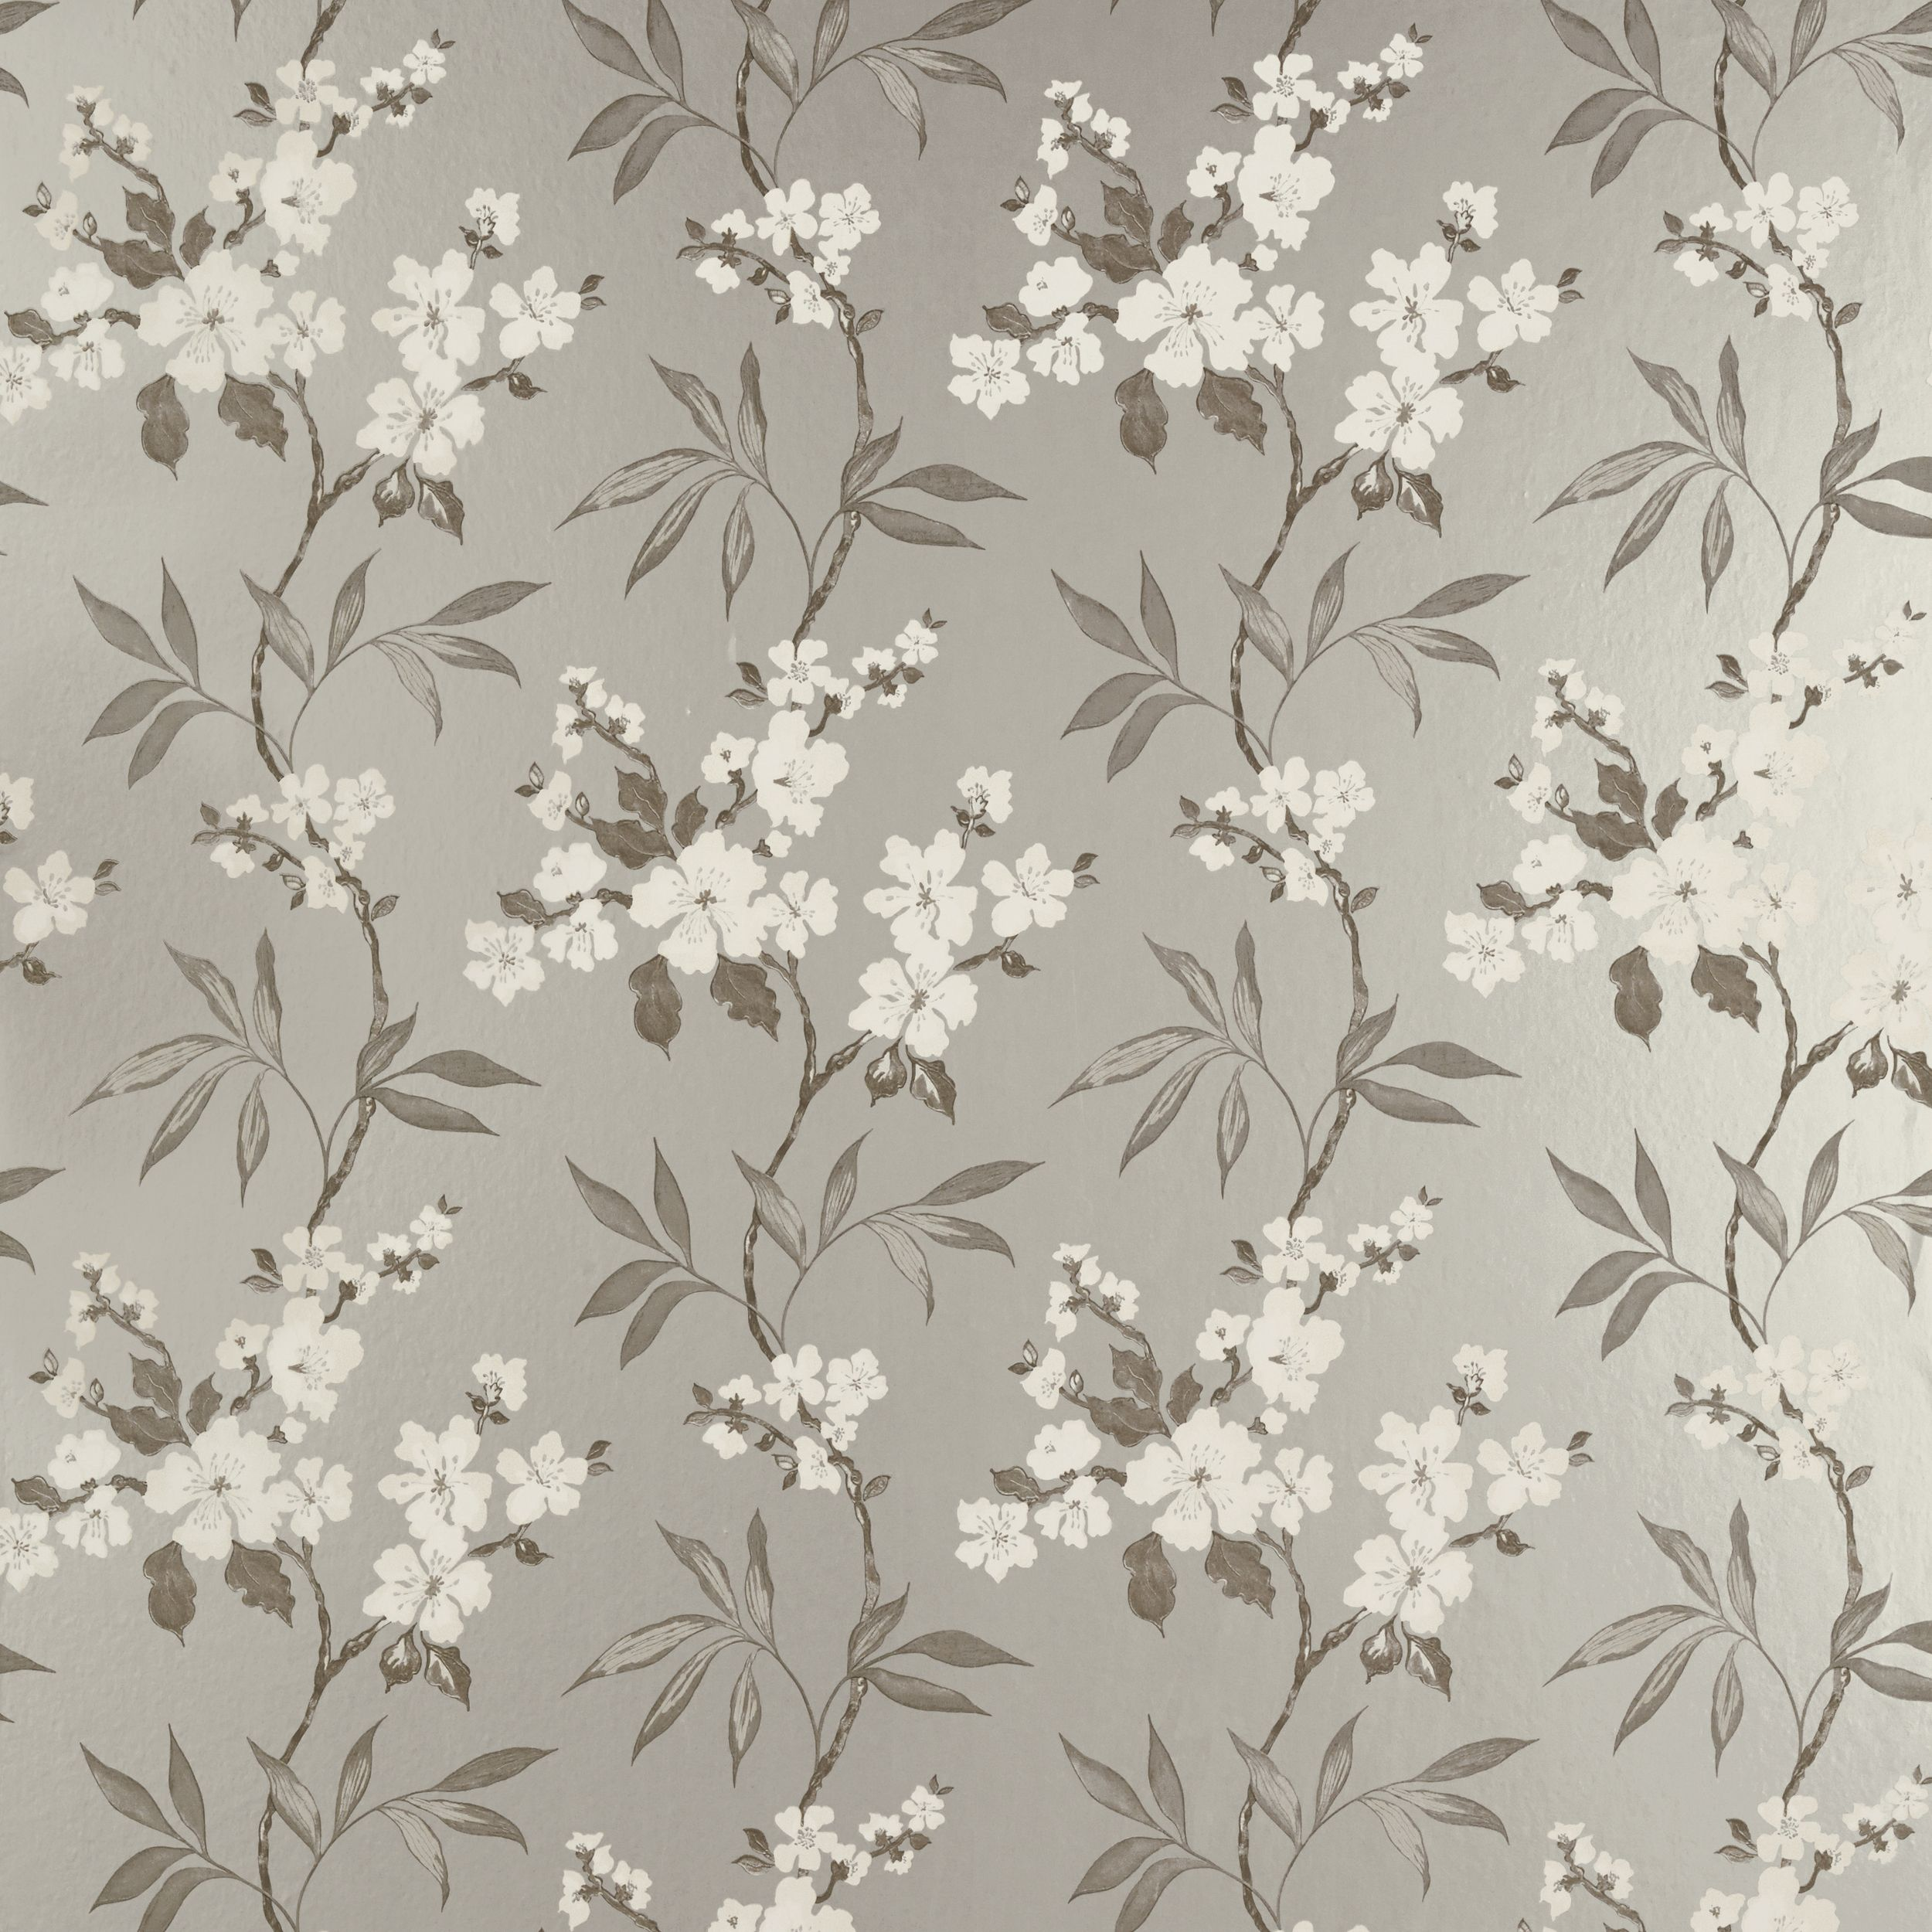 Calissa Pewter Floral wallpaper, Laura Ashley Feature